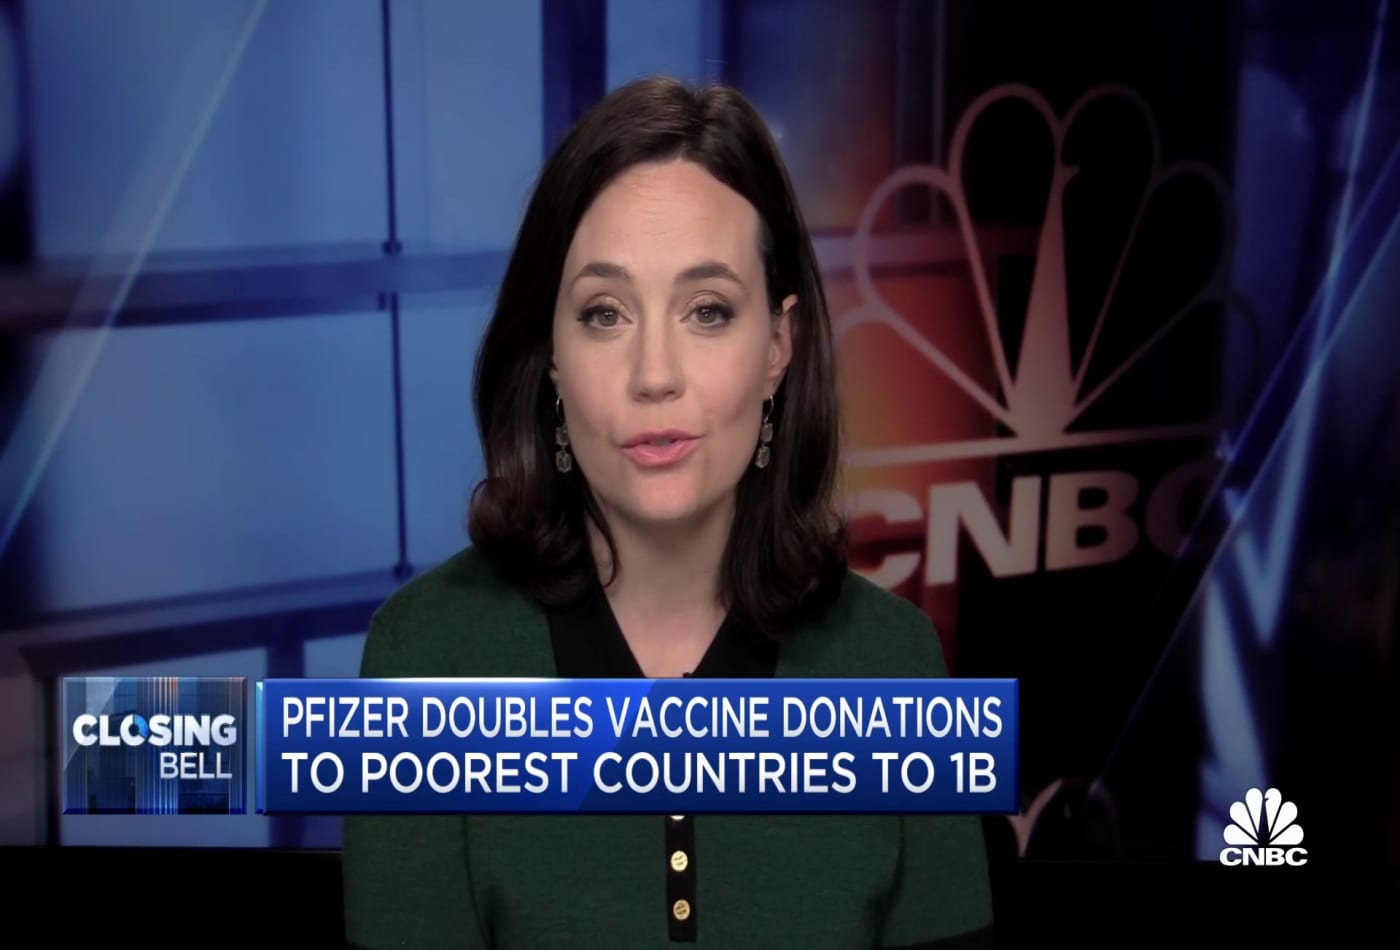 U.S. government purchases more Pfizer doses for donation to poorer countries